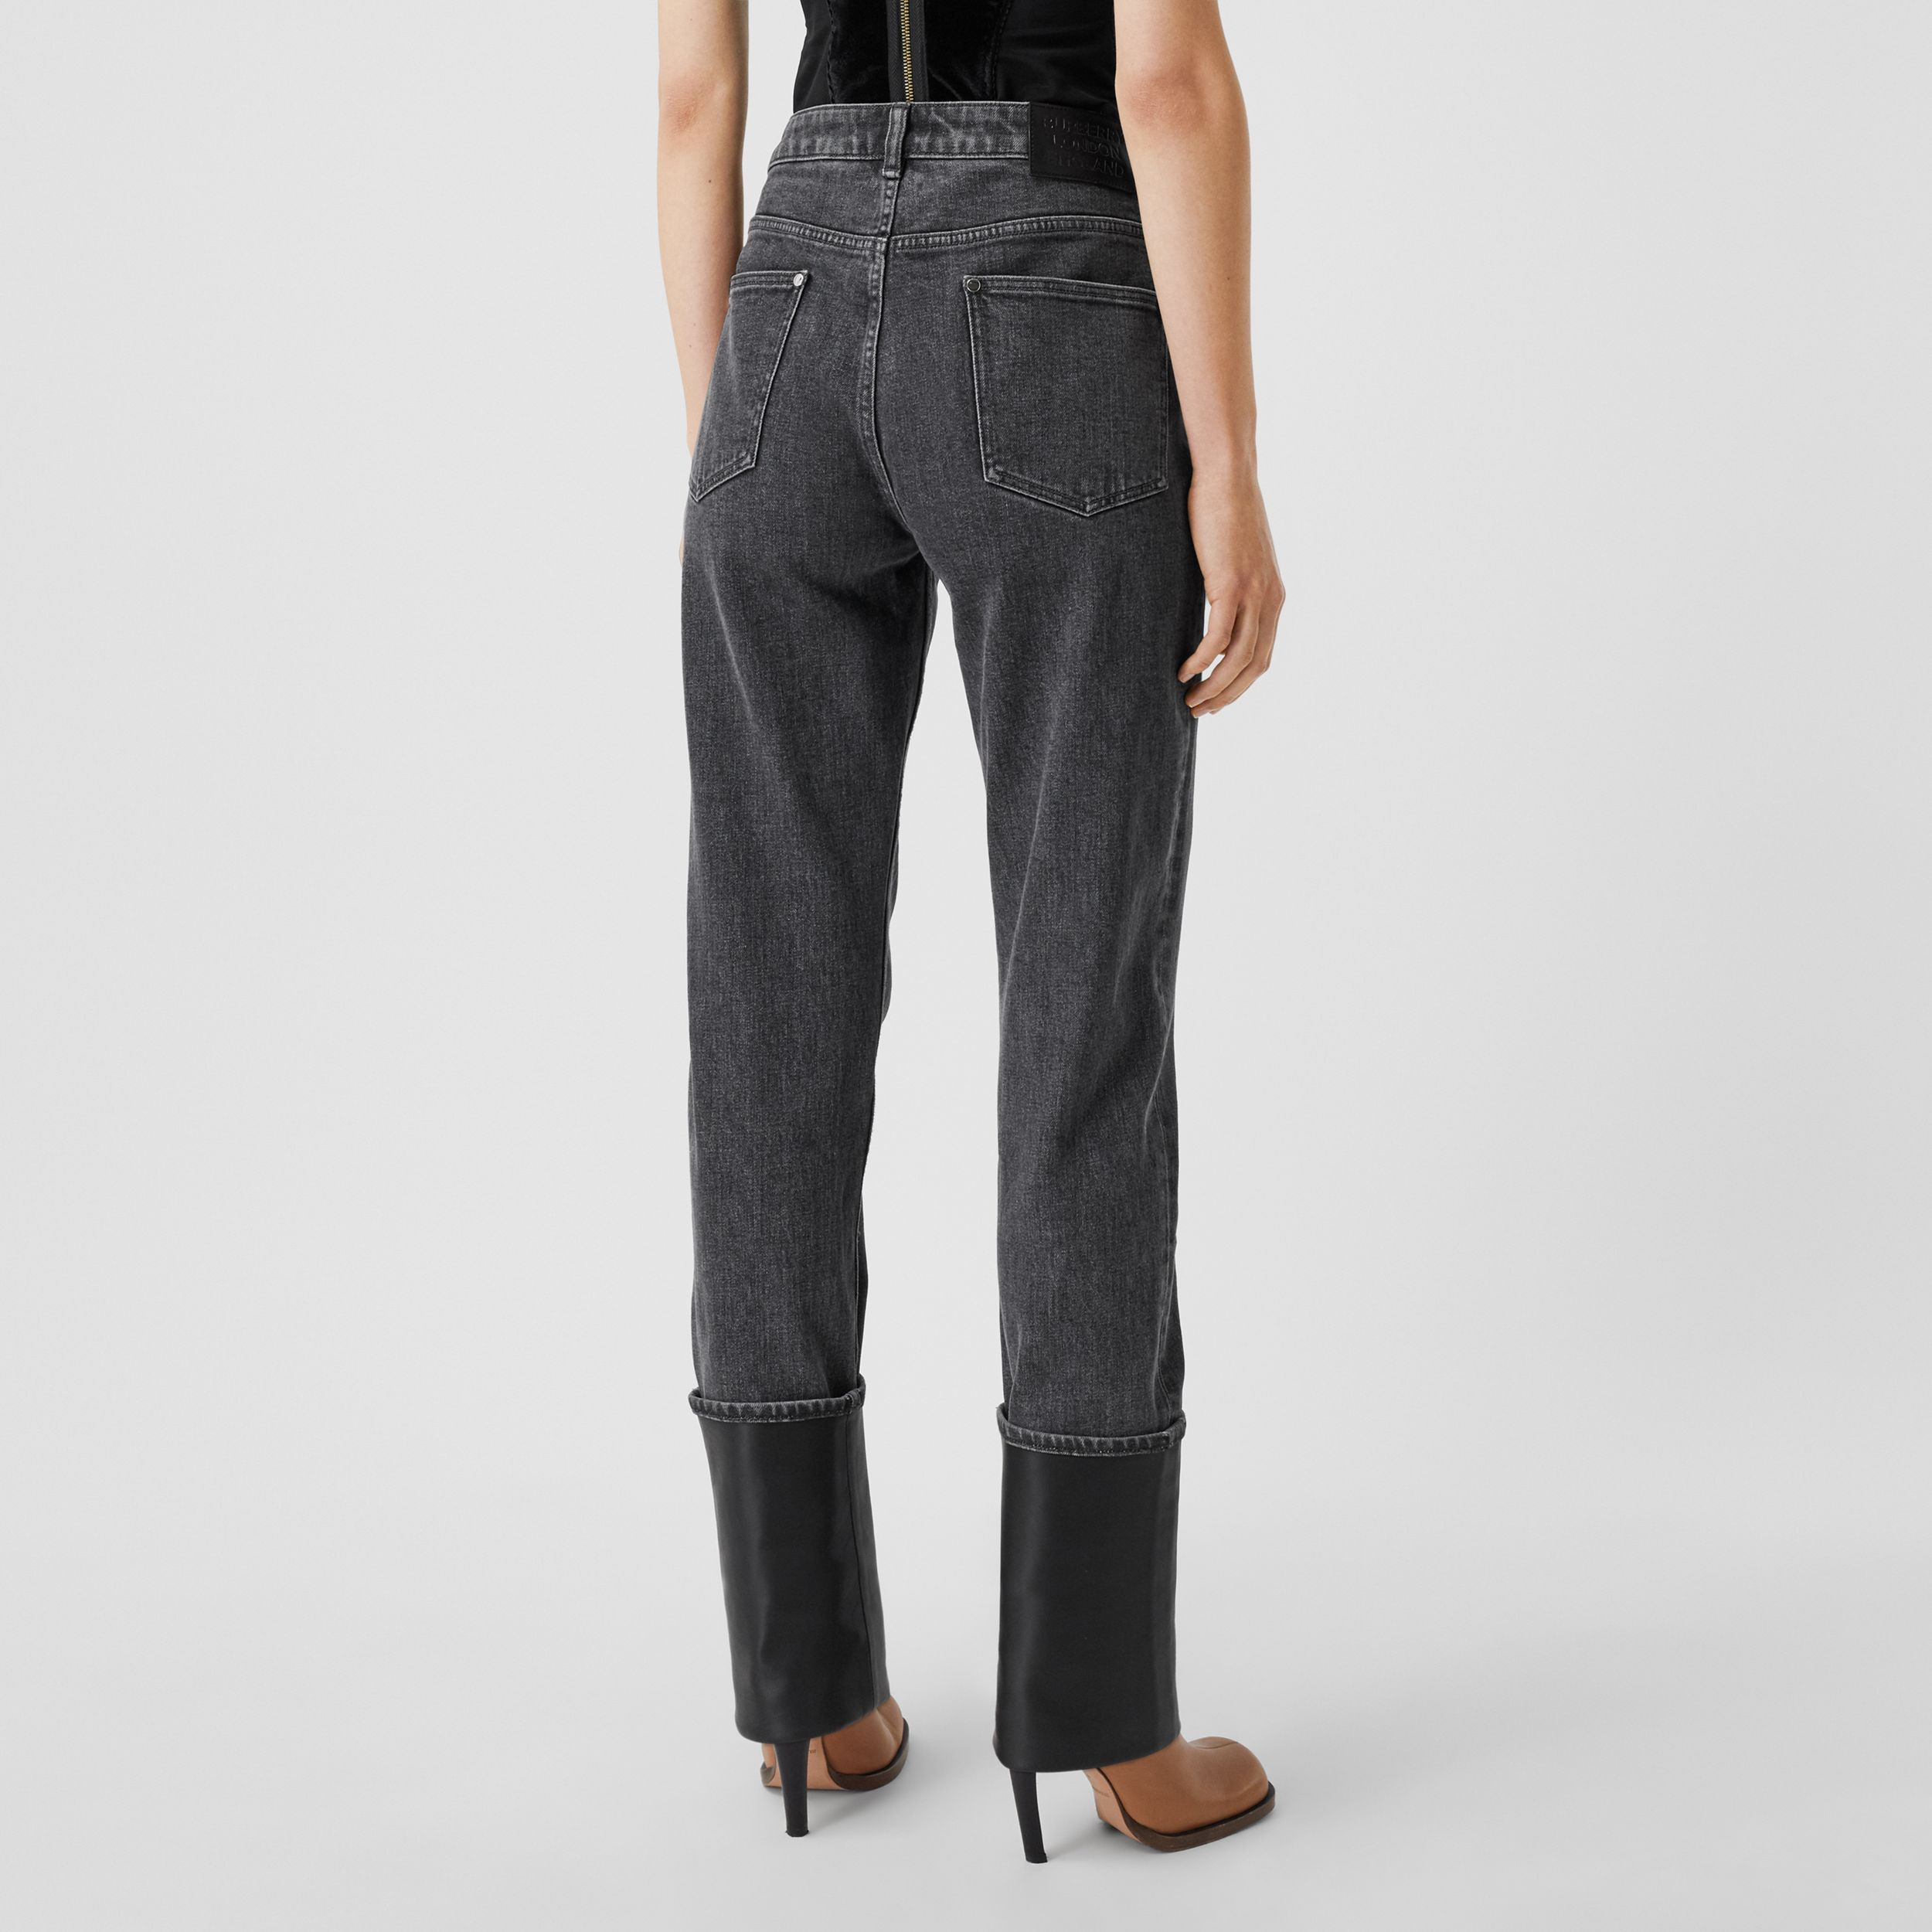 Straight Fit Contrast Cuff Washed Jeans in Grey - Women | Burberry - 3